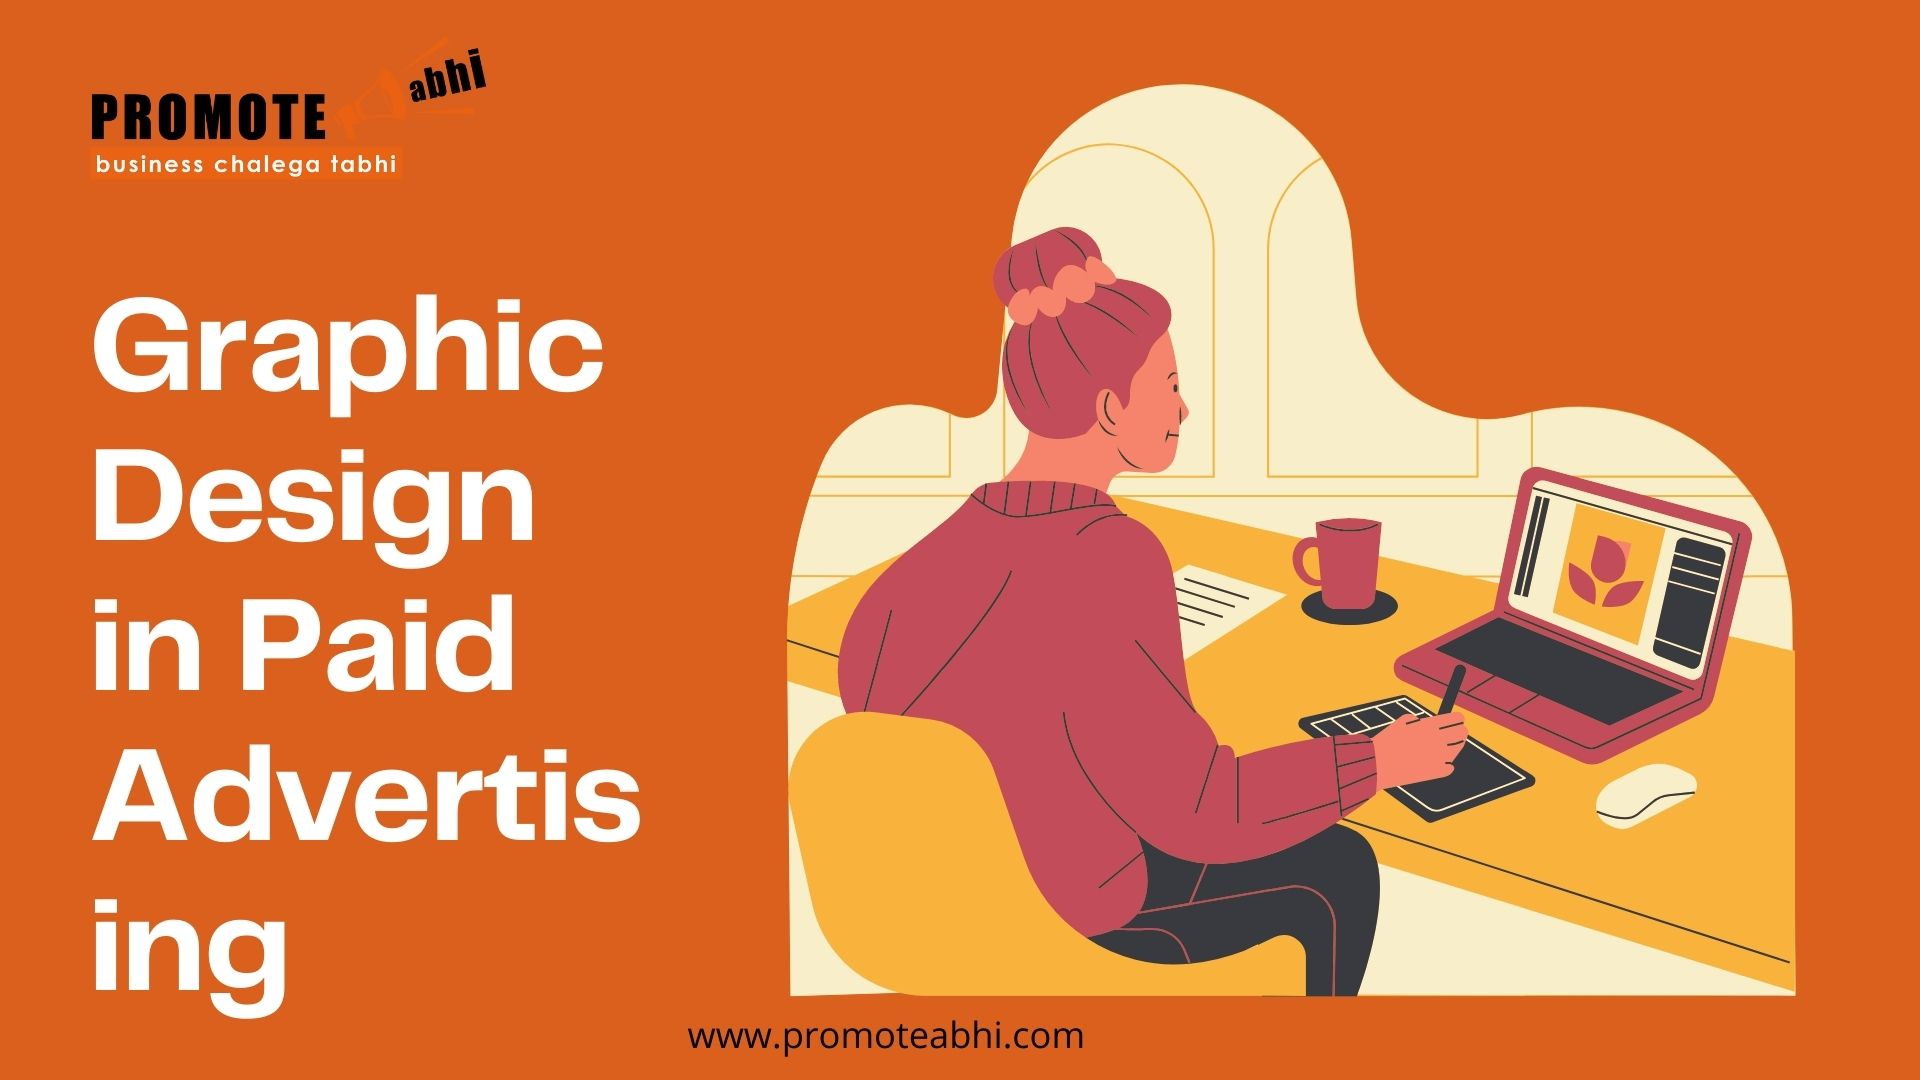 Graphic Design in Paid Advertising